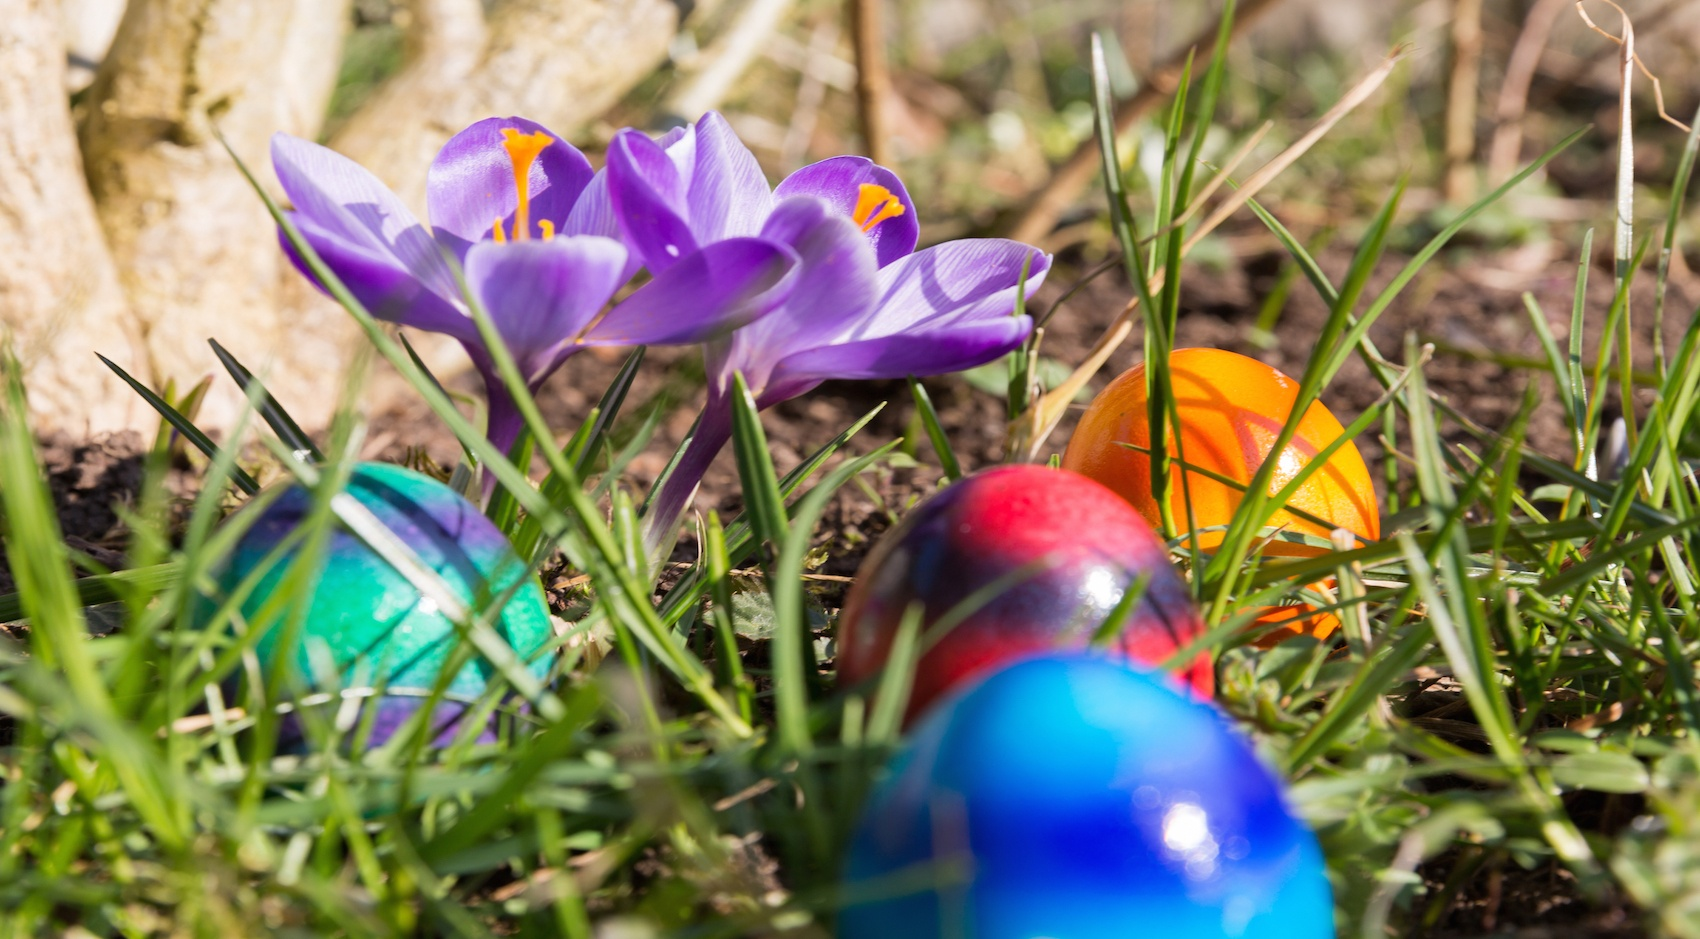 The Top 4 Things to Do in Charleston on Easter Sunday